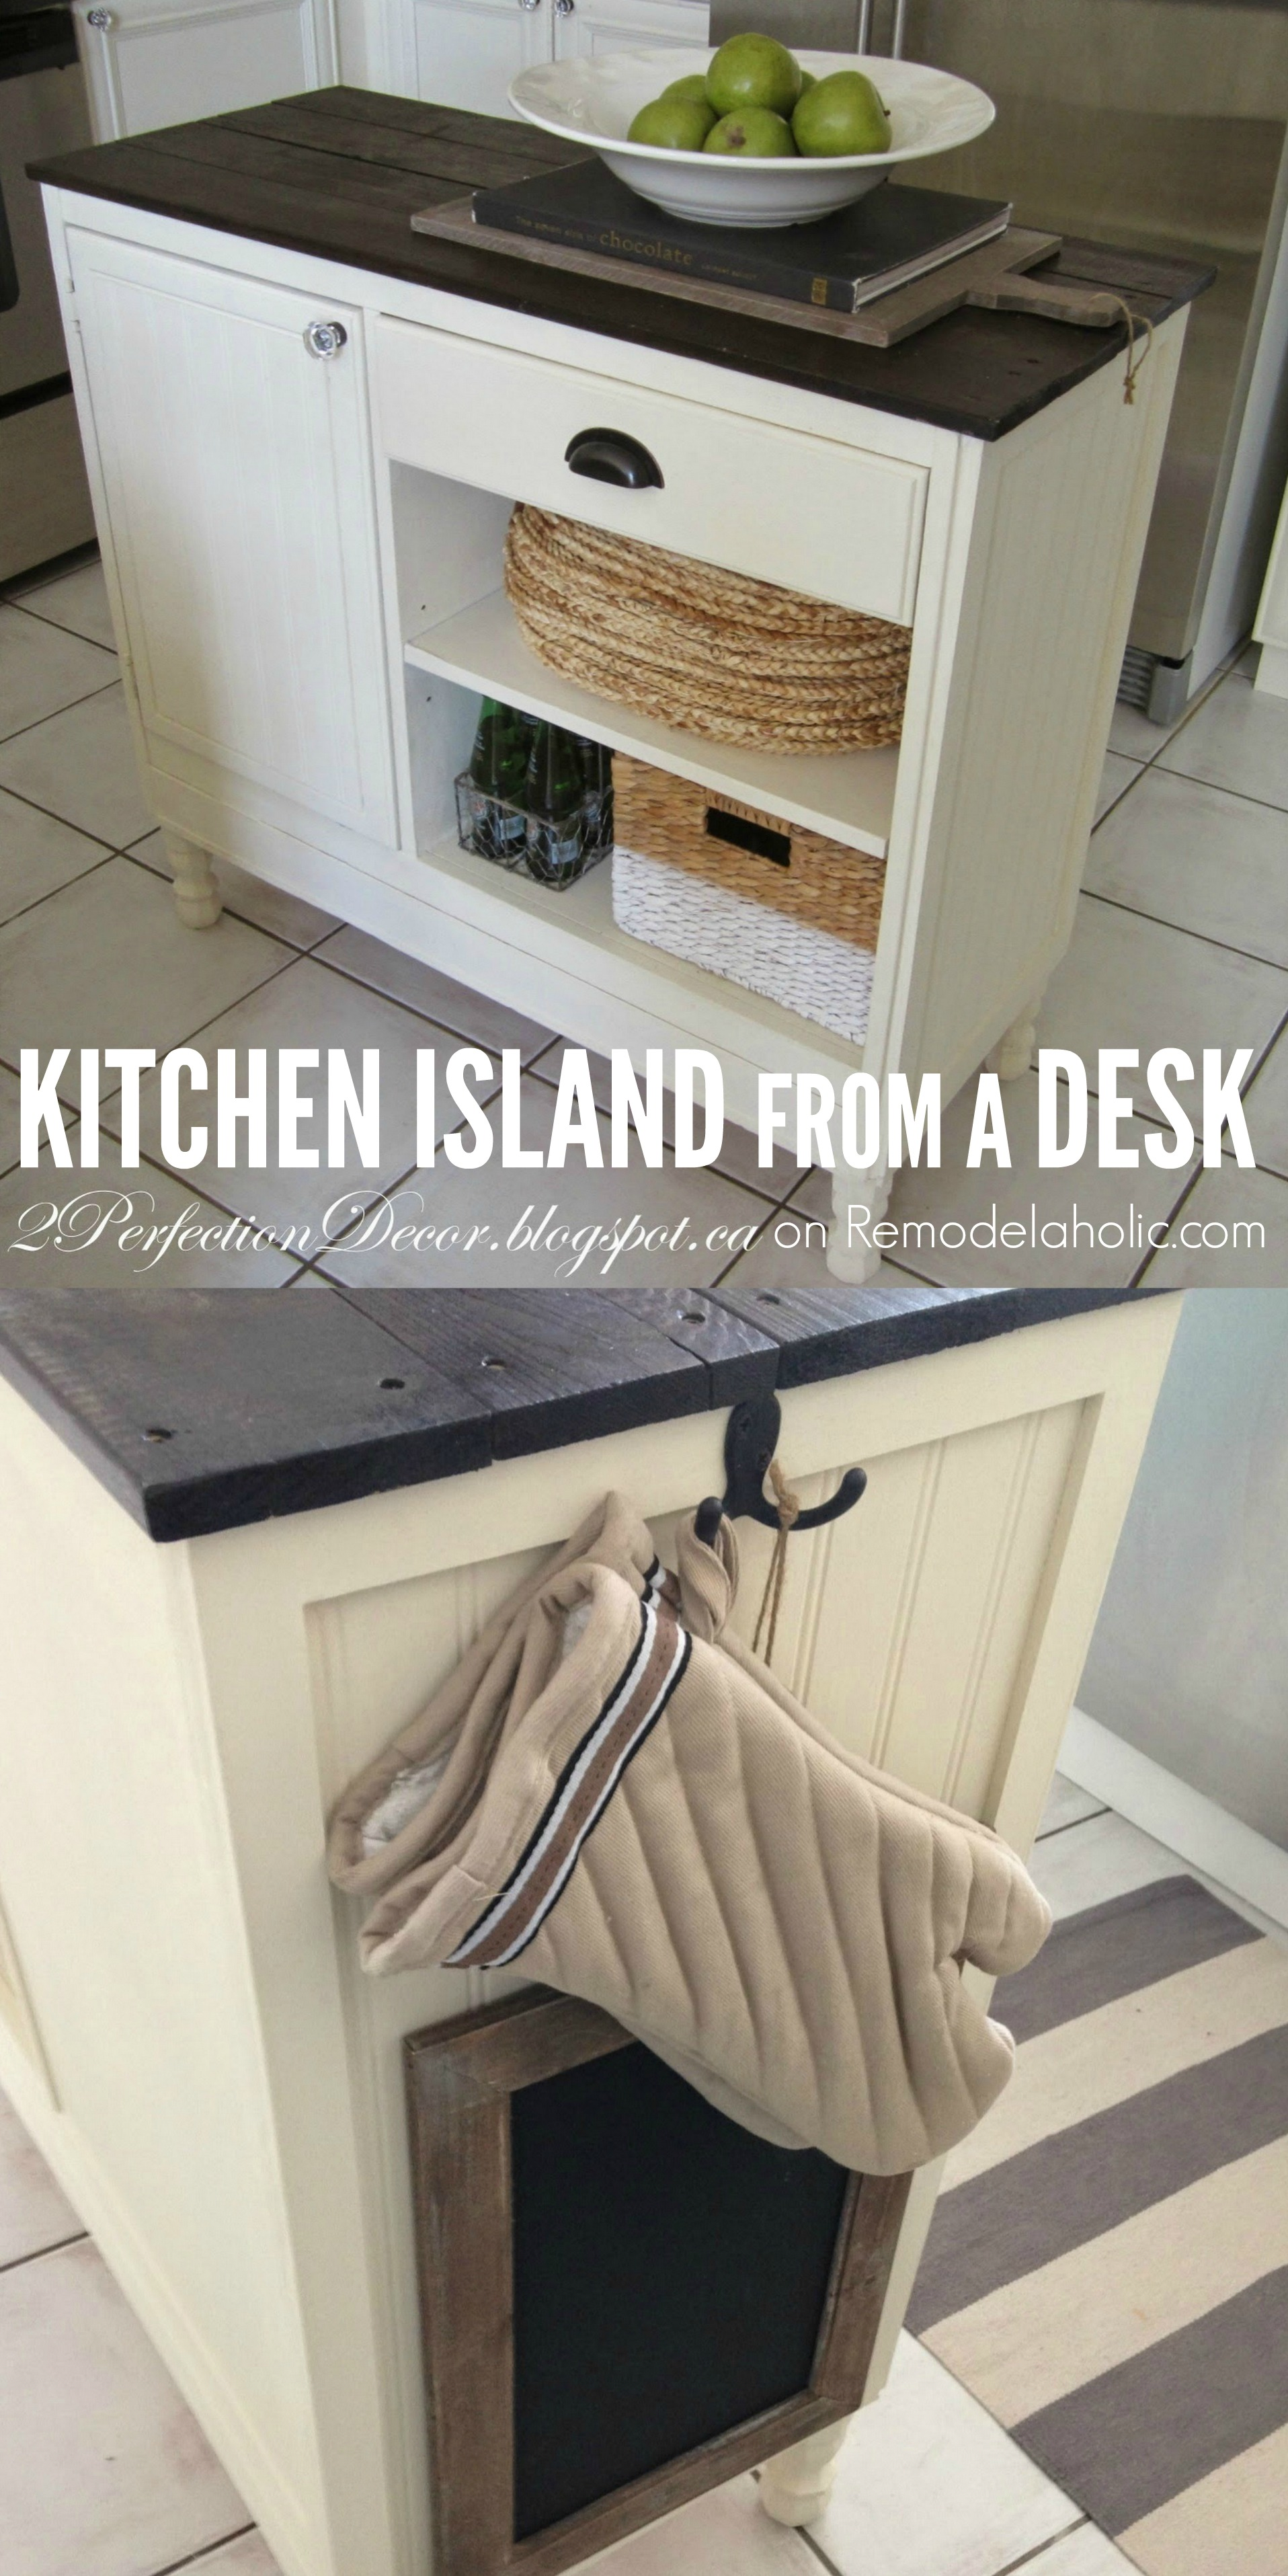 Remodelaholic Upcycled Vintage Desk Into Kitchen Island